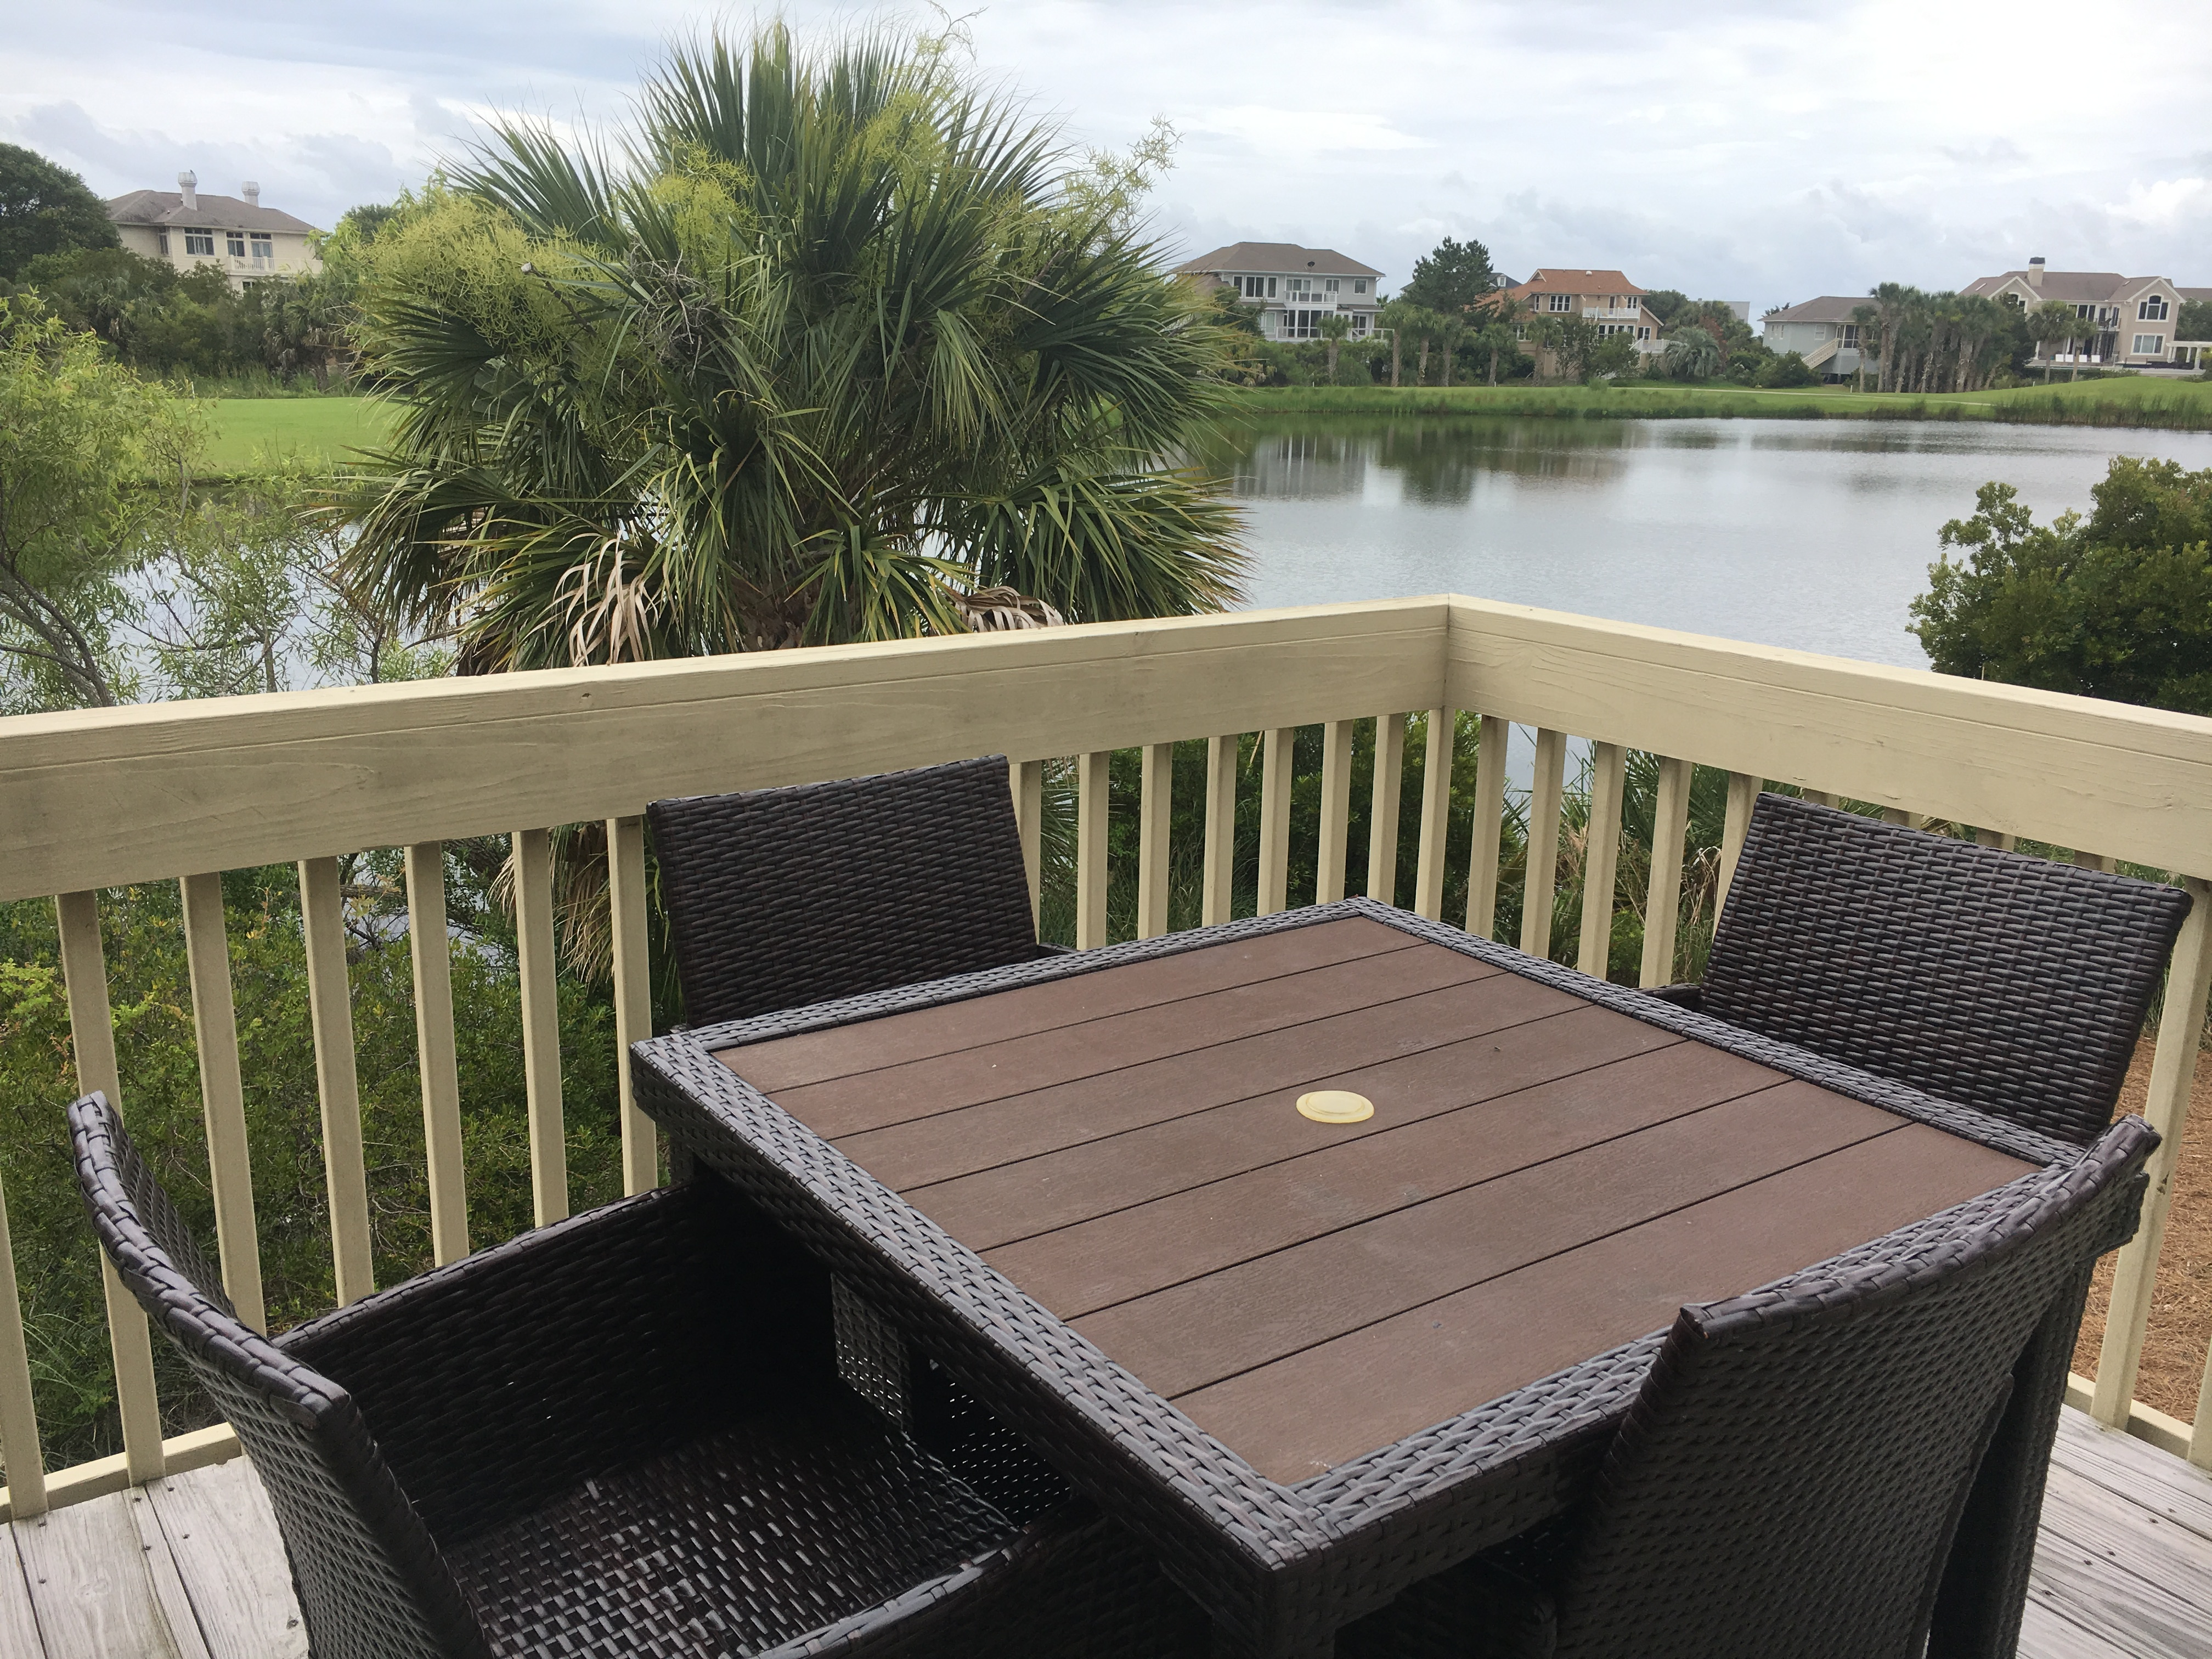 Enjoy the fabulous view over the large lagoon on the 11th fairway of the Ocean Winds course.  It is teeming with wildlife!  What a view!